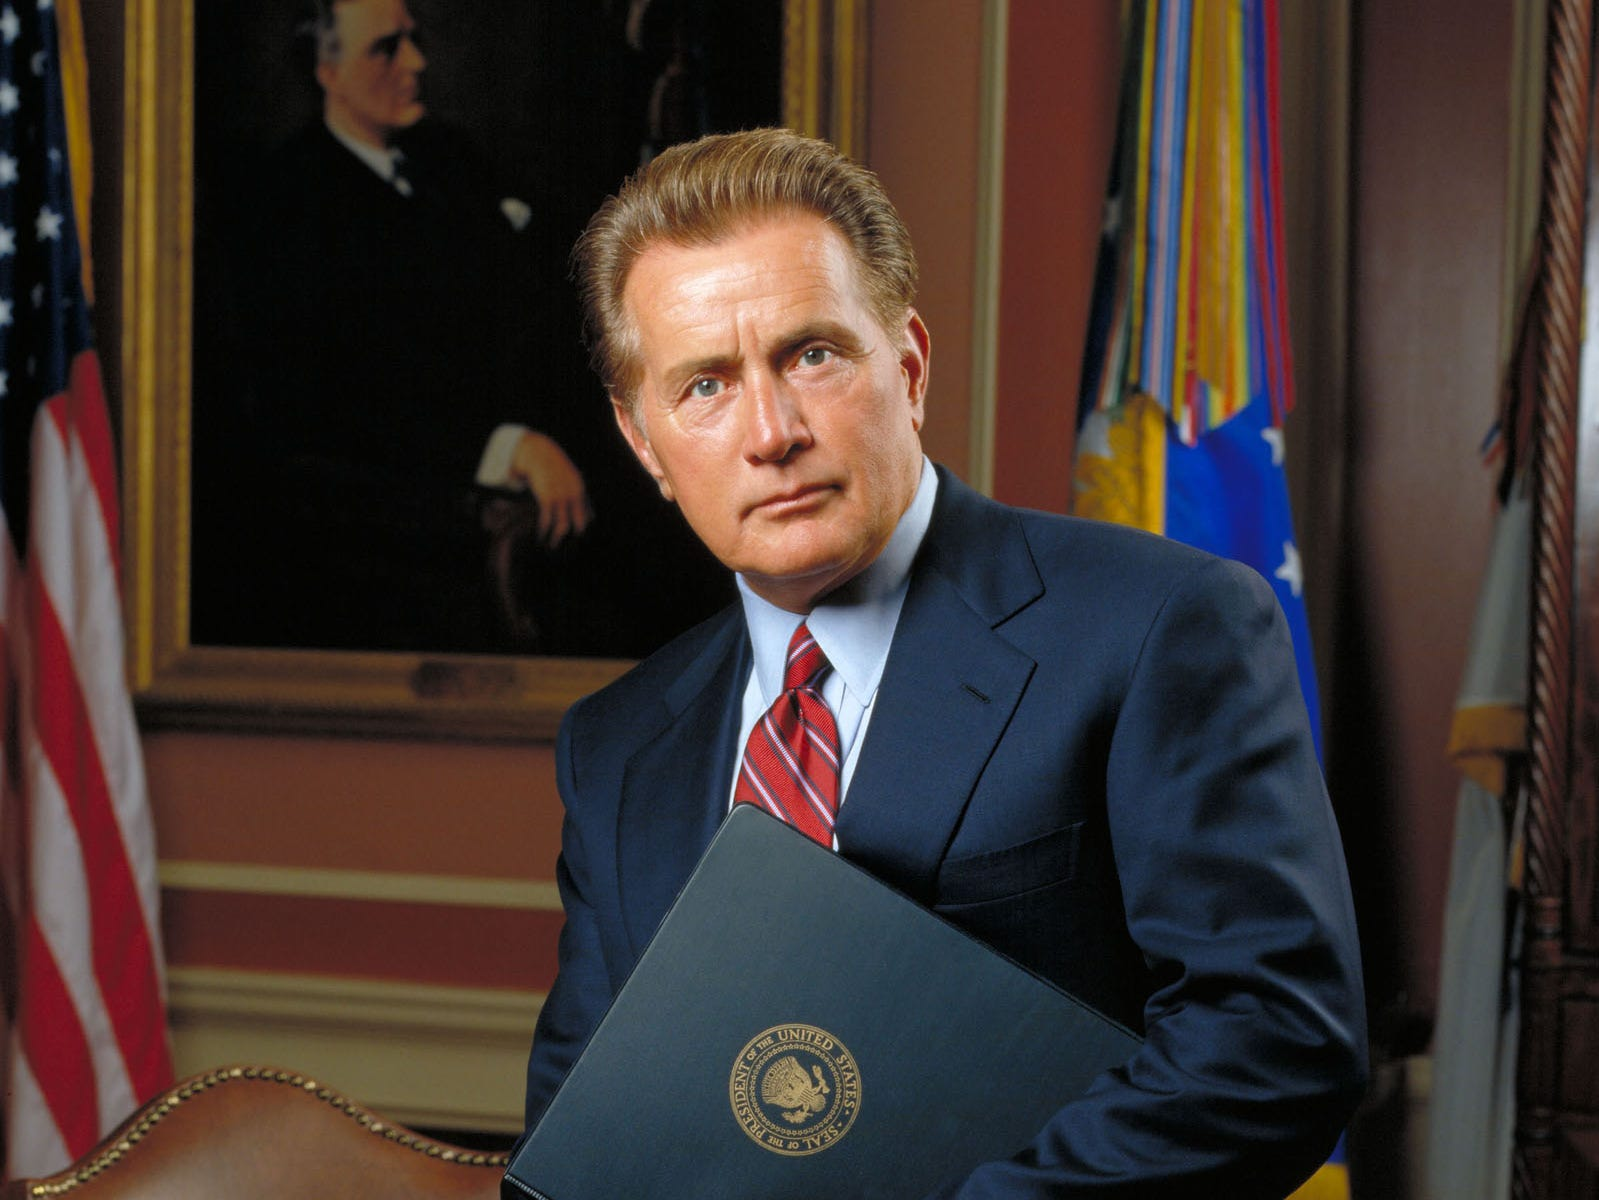 """The West Wing"" (NBC, 1999-2006): The Aaron Sorkin series followed President Josiah Bartlet (Martin Sheen) and his West Wing staff as they deal with the challenges of working in the White House."